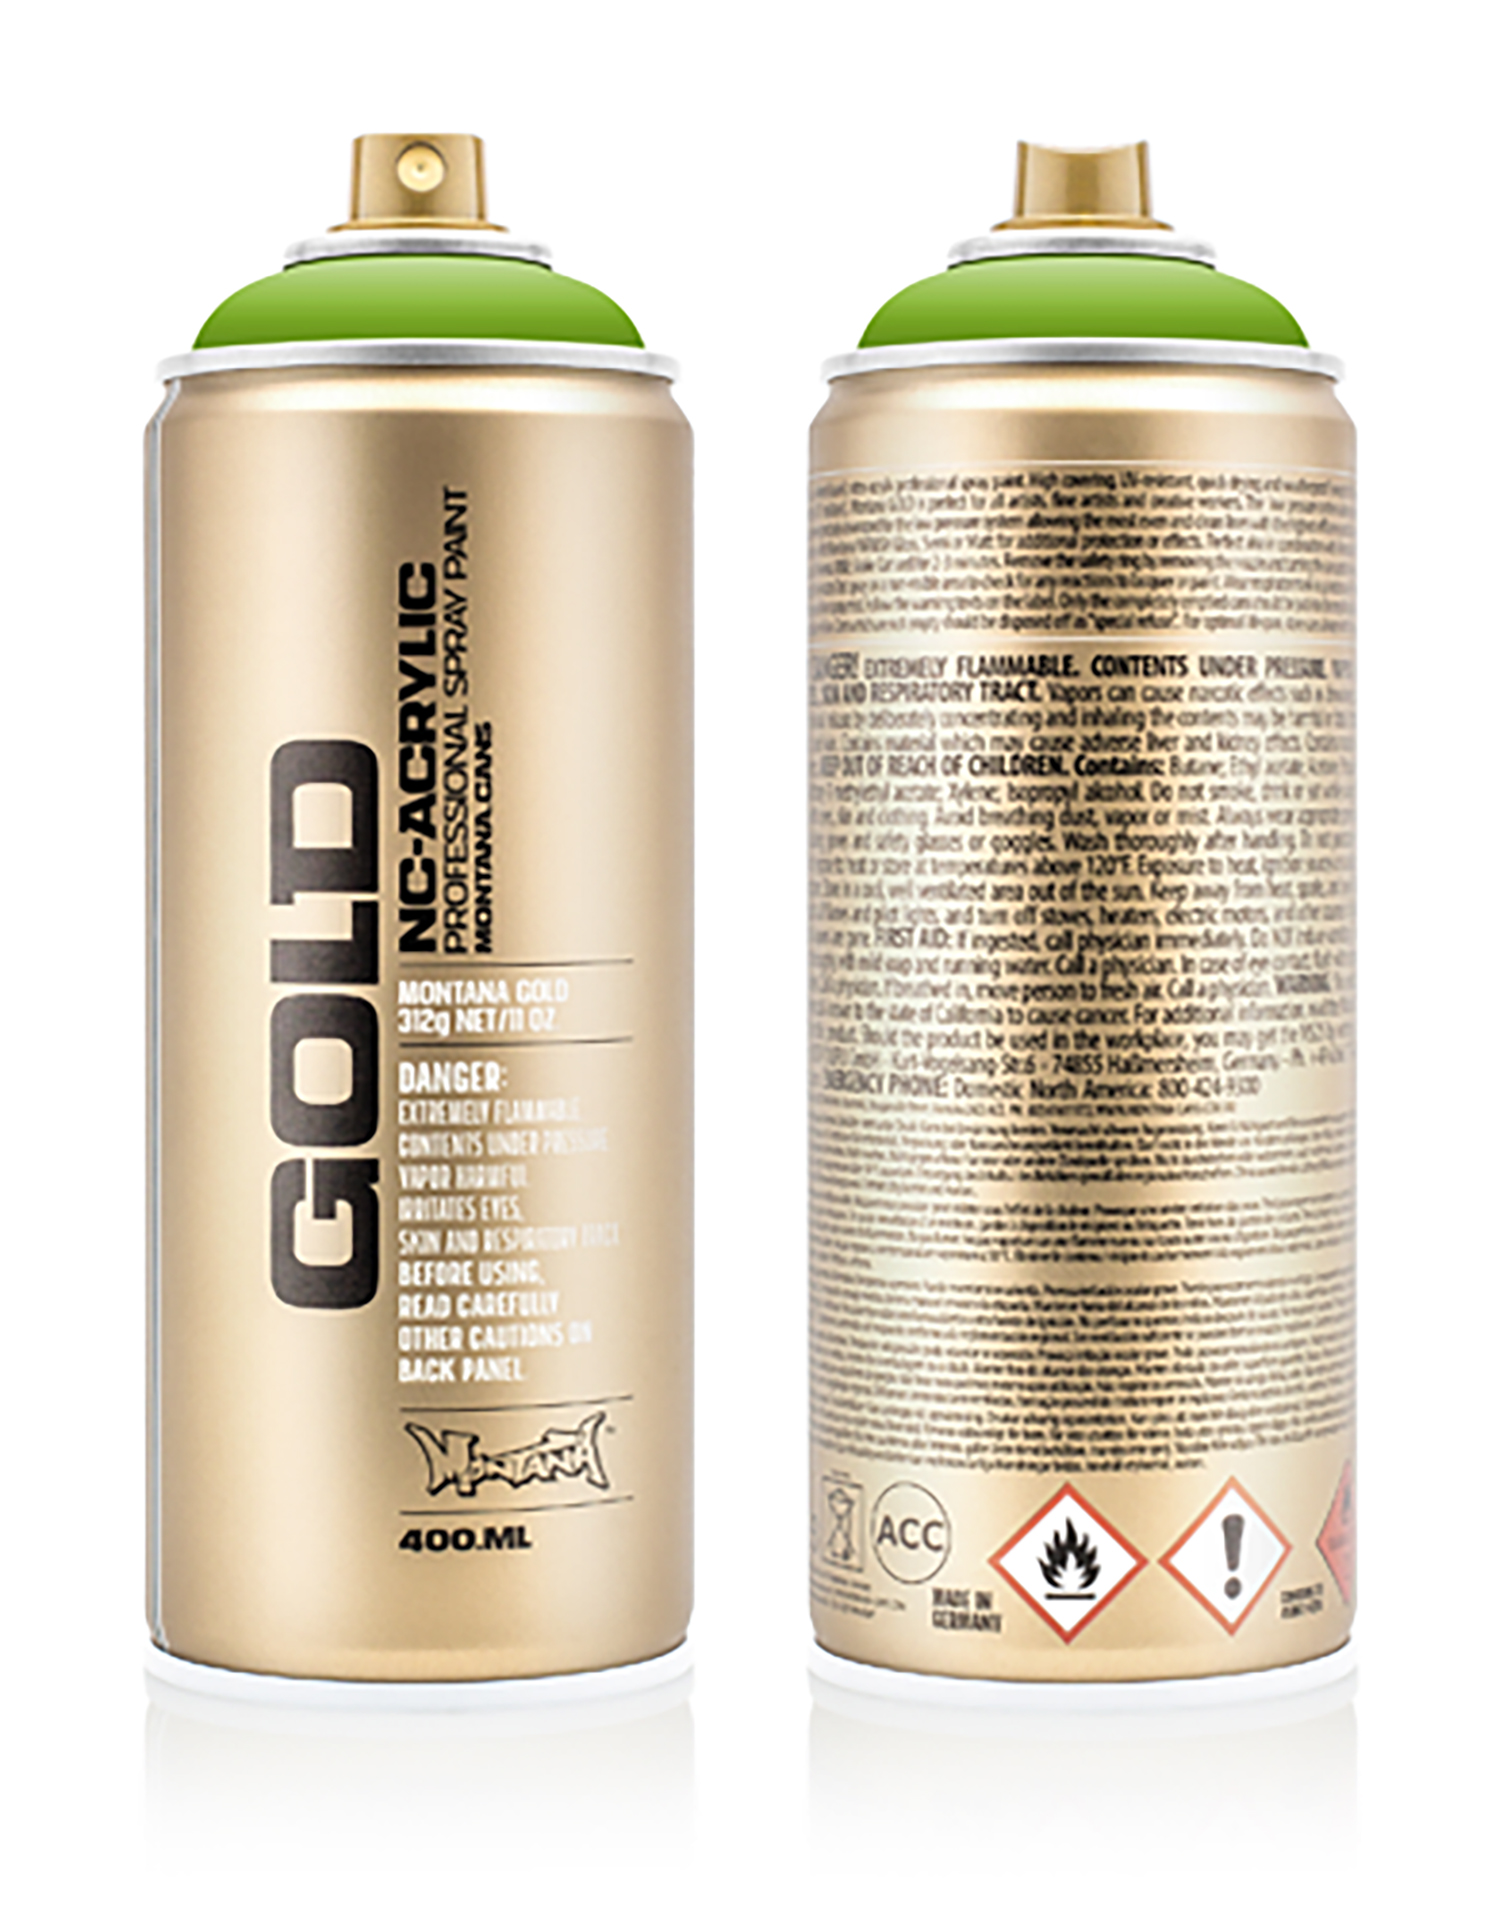 MONTANA-GOLD-SPRAY-400ML-G-6040